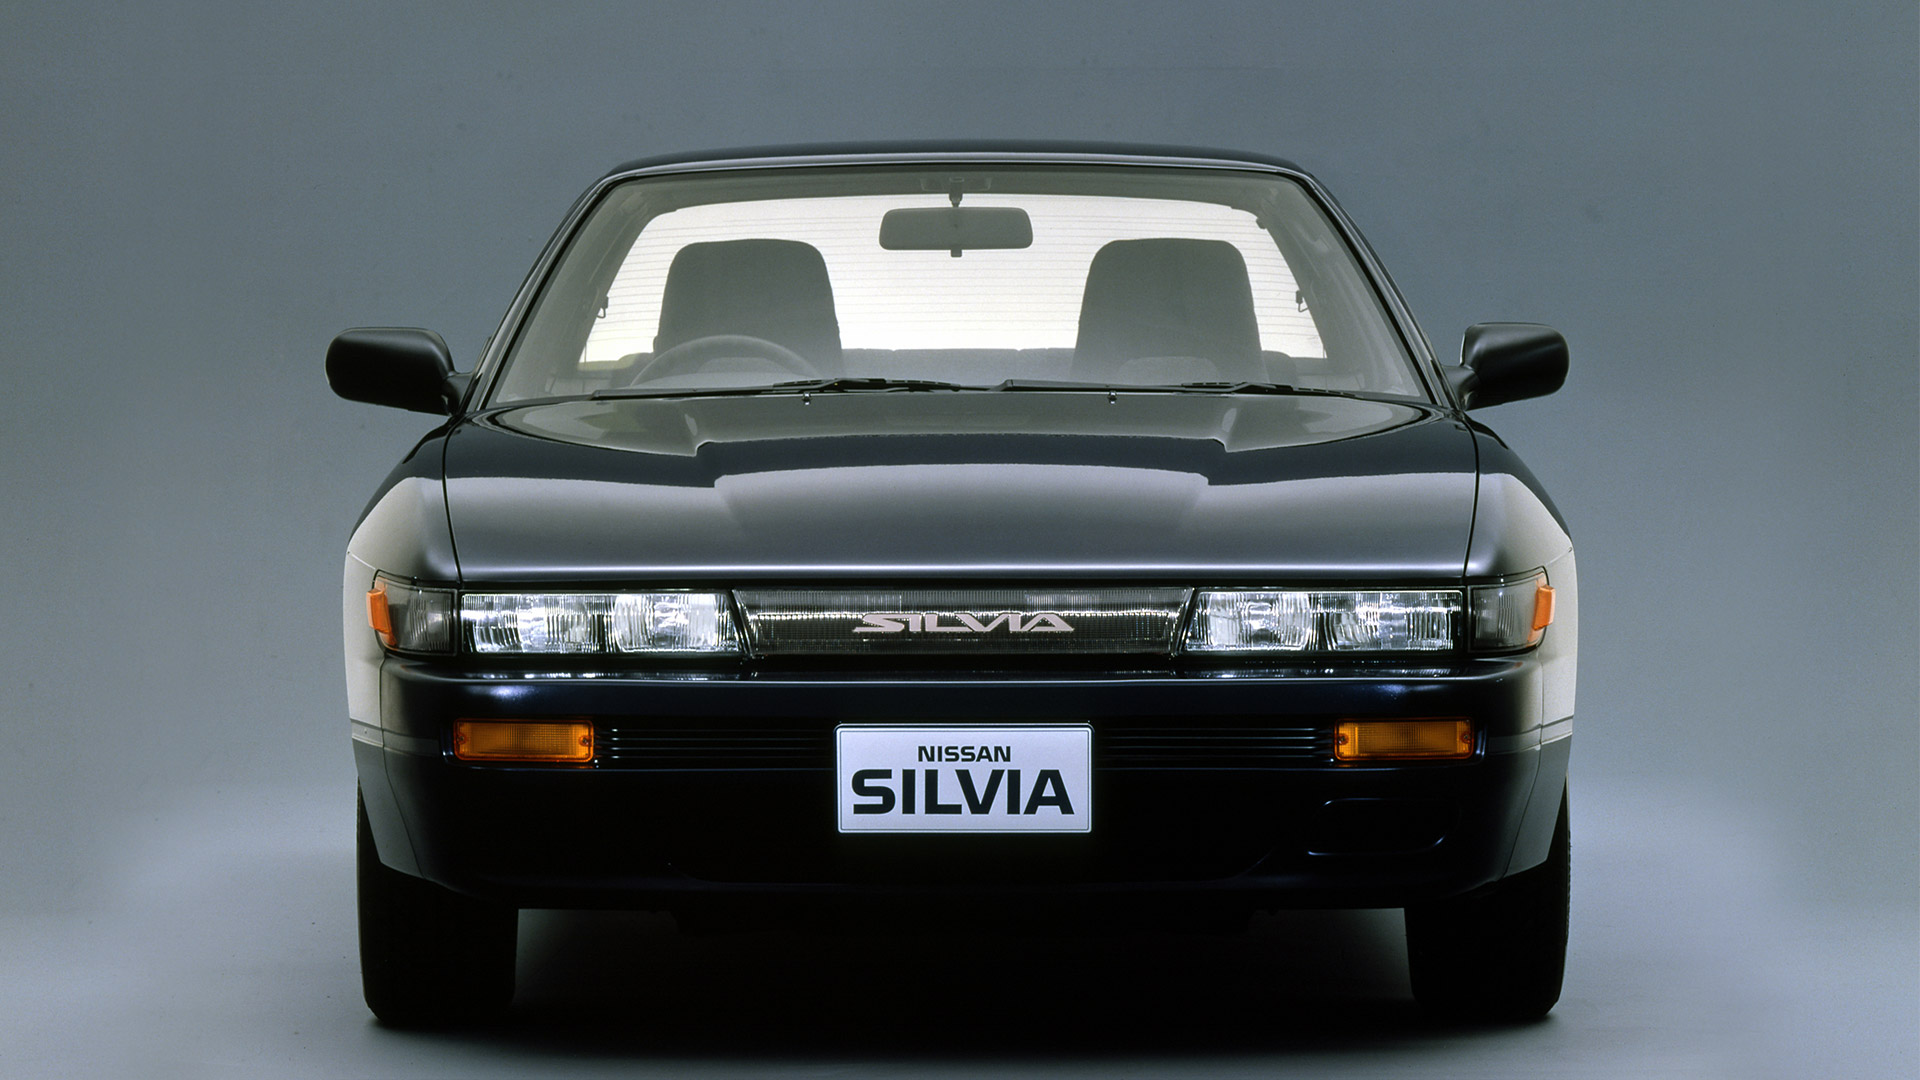 1988 Nissan Silvia Picture Nissan Silvia S13 1988 1486896 Hd Wallpaper Backgrounds Download